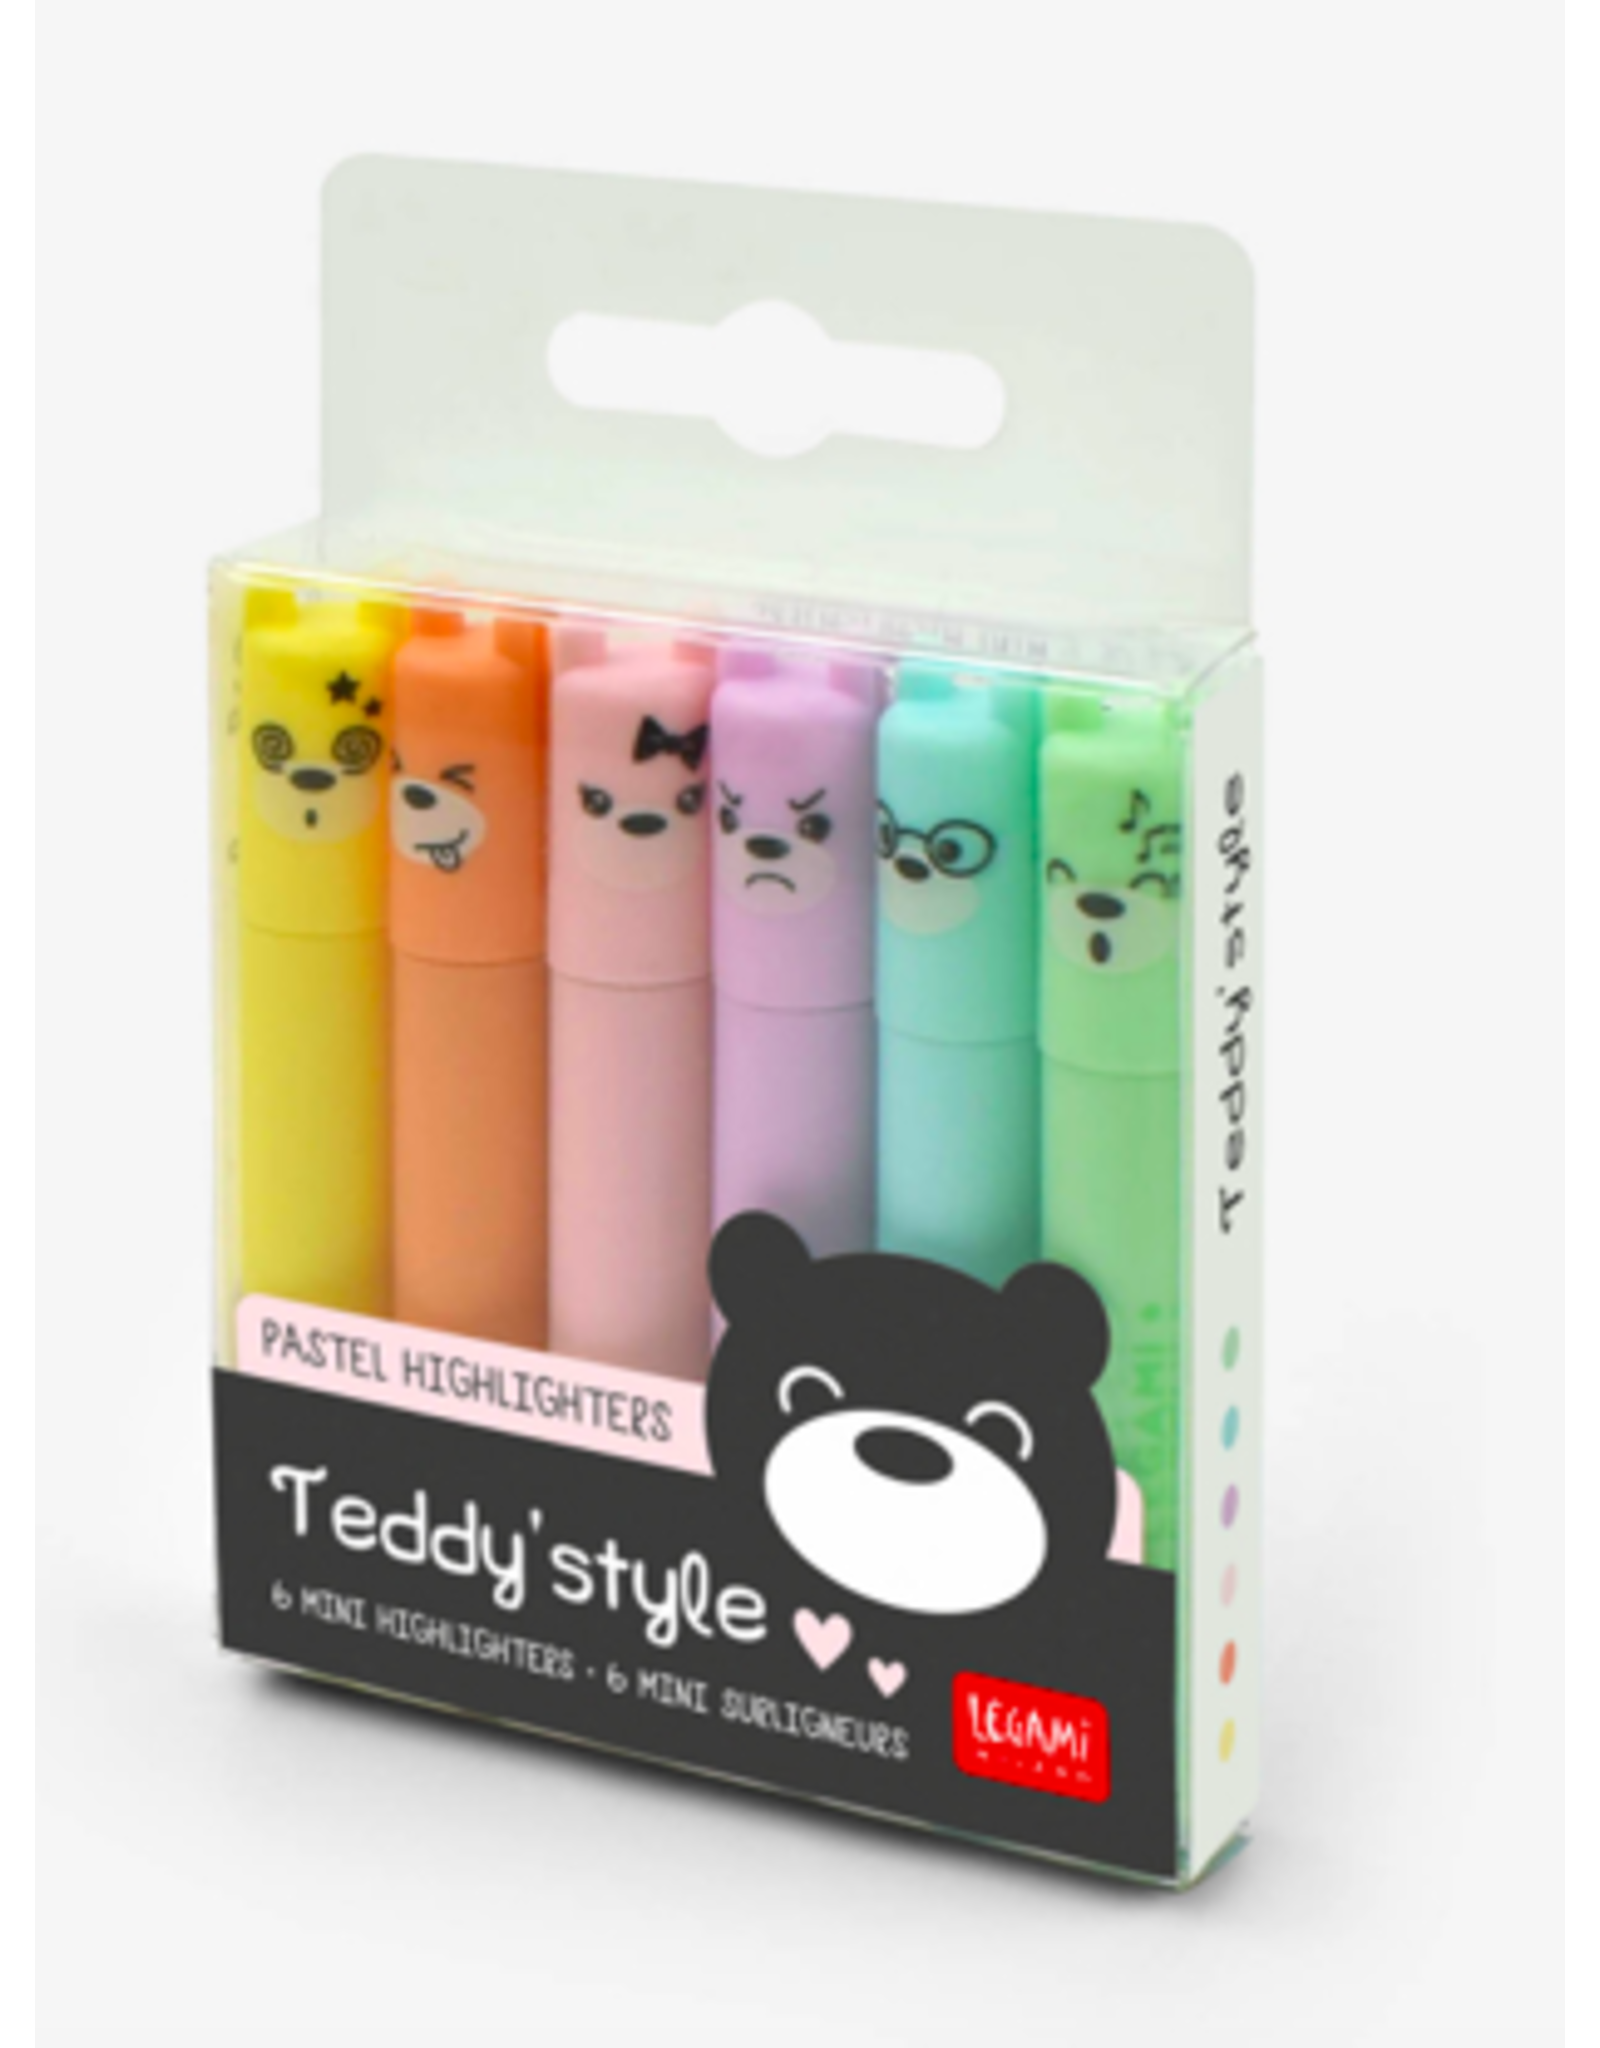 Legami highlighters - Teddy's style (6pcs)